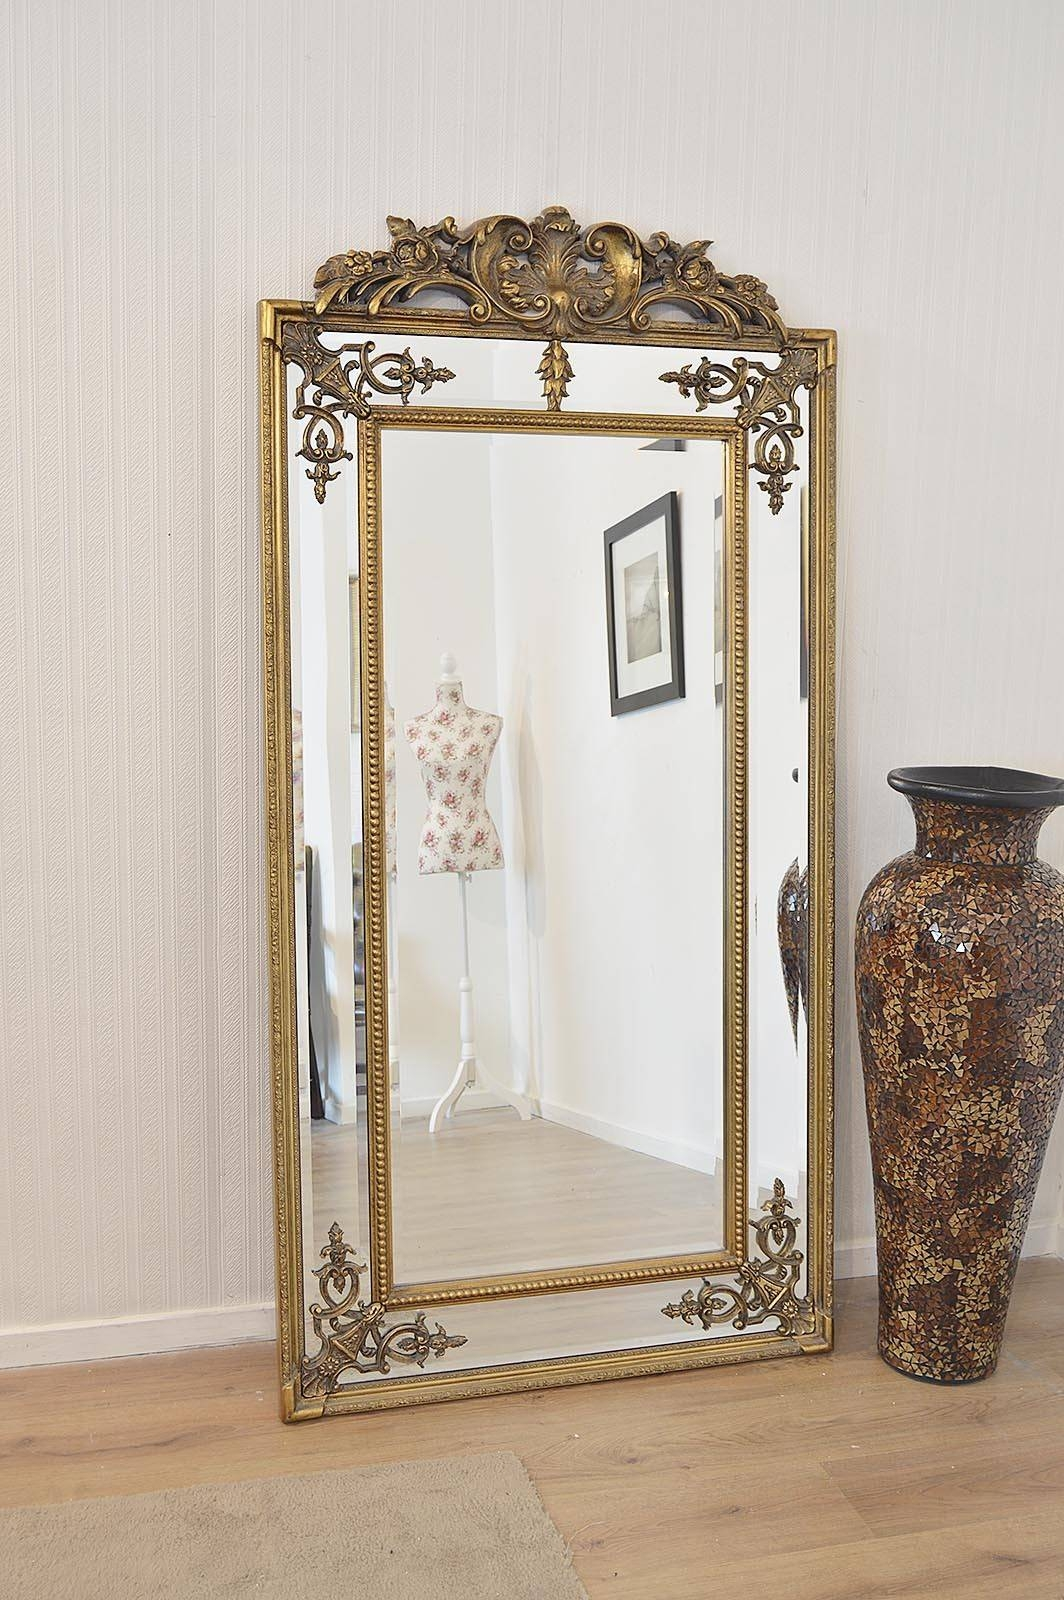 Ornate Mirrors For Sale 50 Outstanding For Nita Extra Large Silver intended for Extra Large Ornate Mirrors (Image 22 of 25)